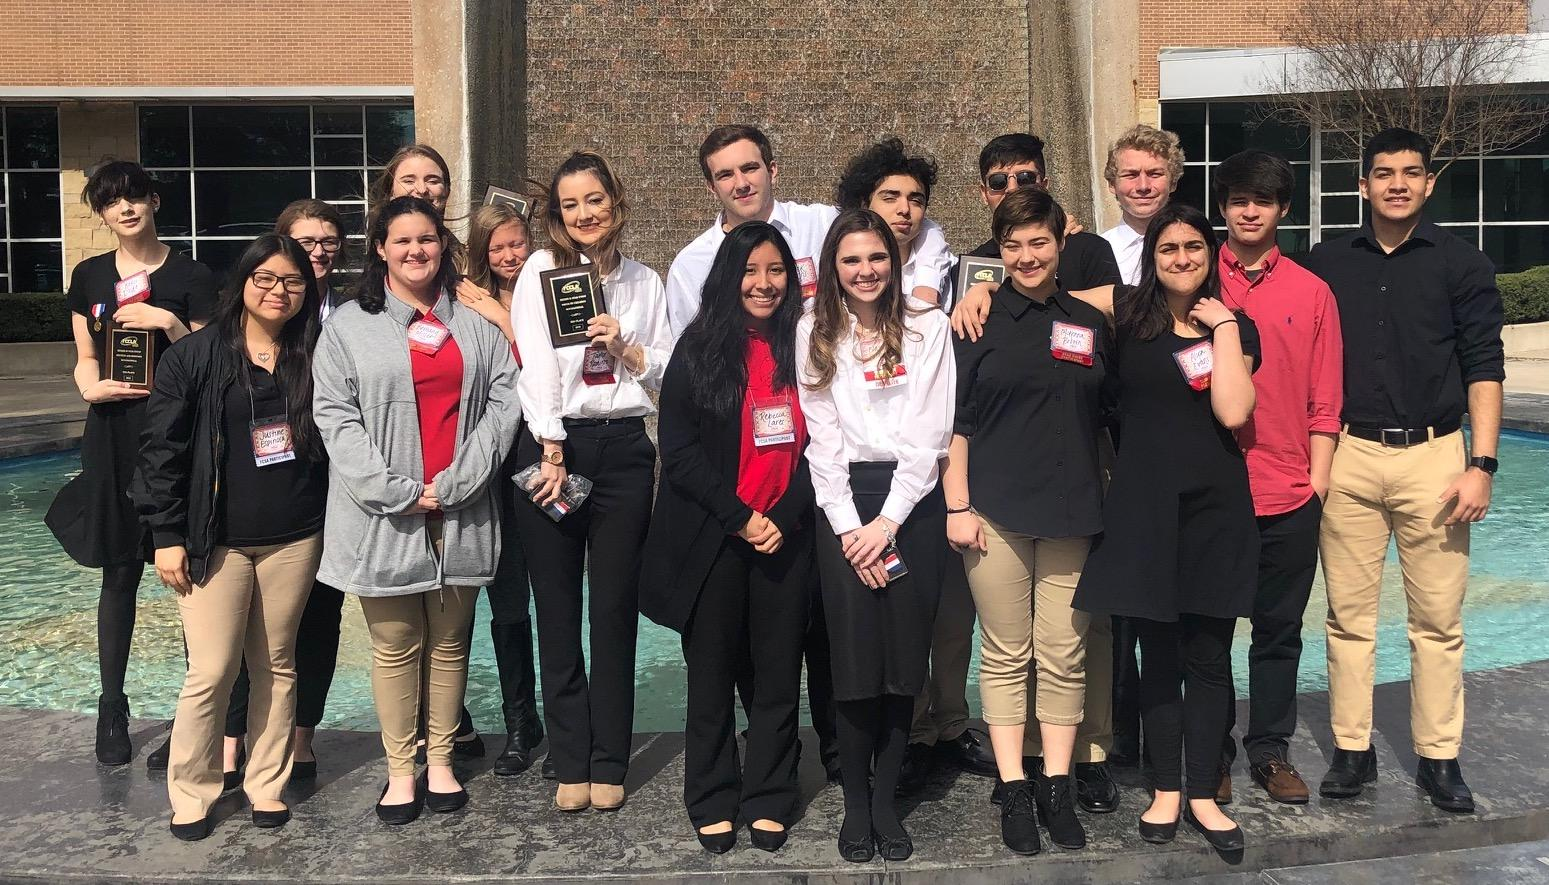 Brewer High School FCCLA students competed at the Region II meeting on Feb. 23, and 10 out of 19 members will advance to the state competition in April.